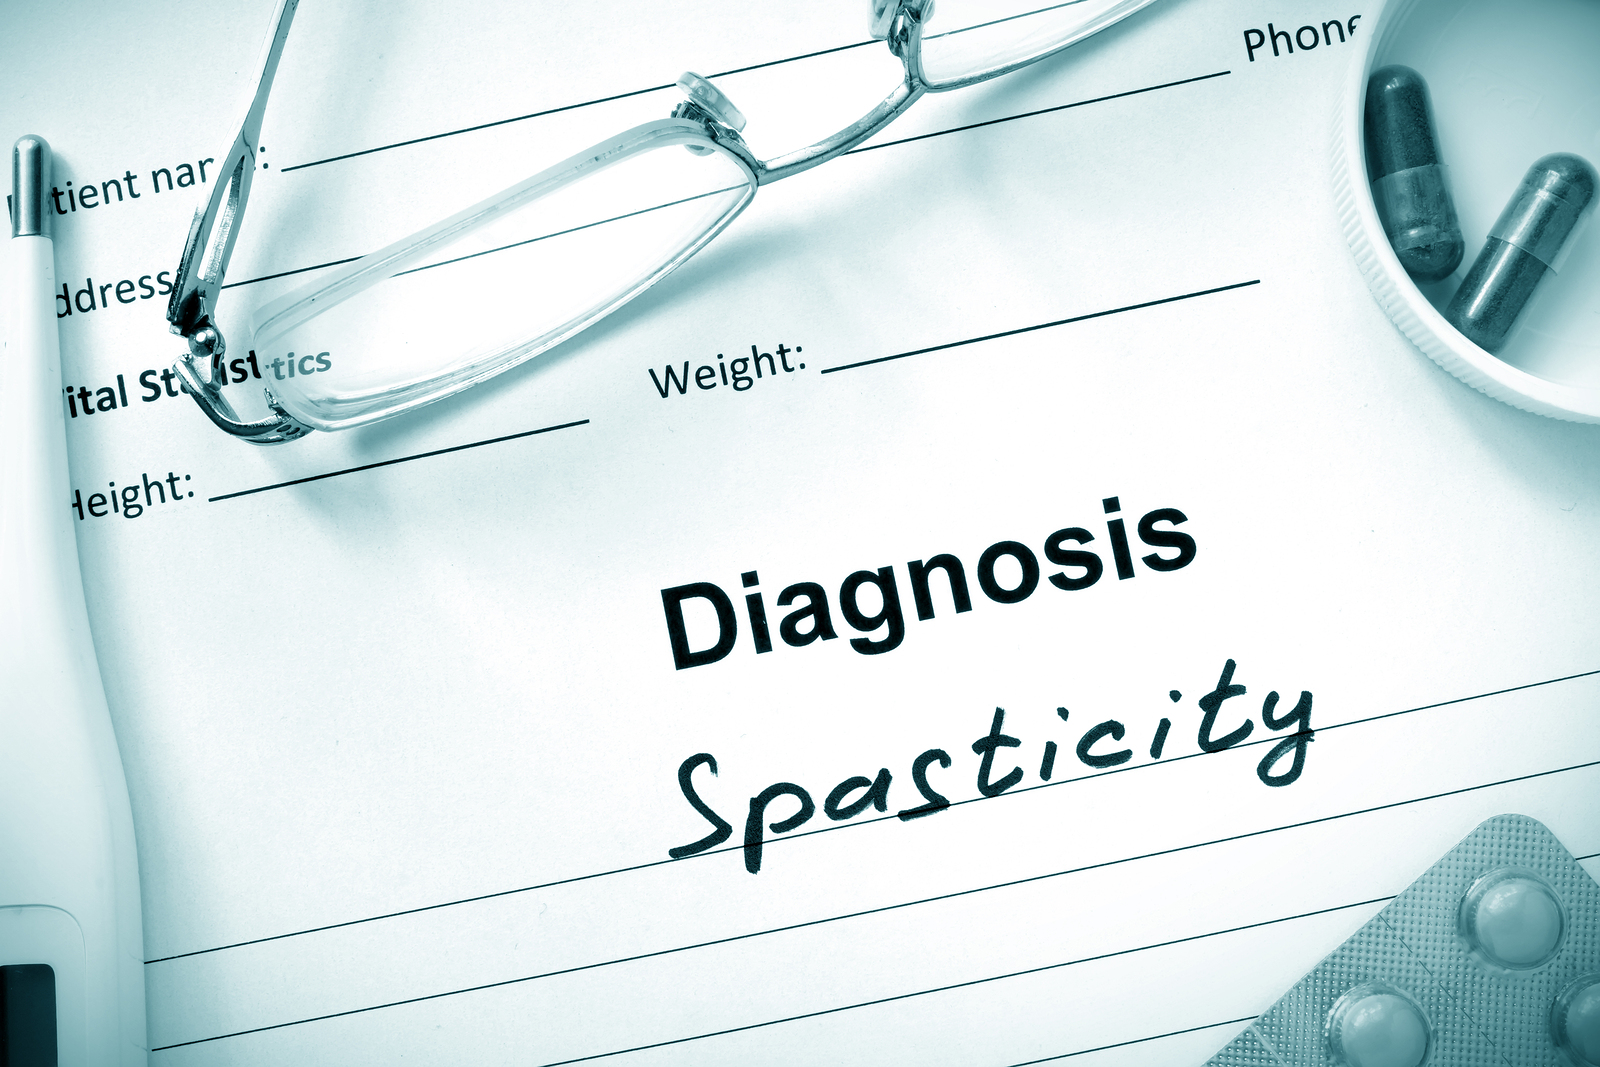 Skeletal Muscular Spasticity & Marijuana Information: Treat Spasticity With Cannabis